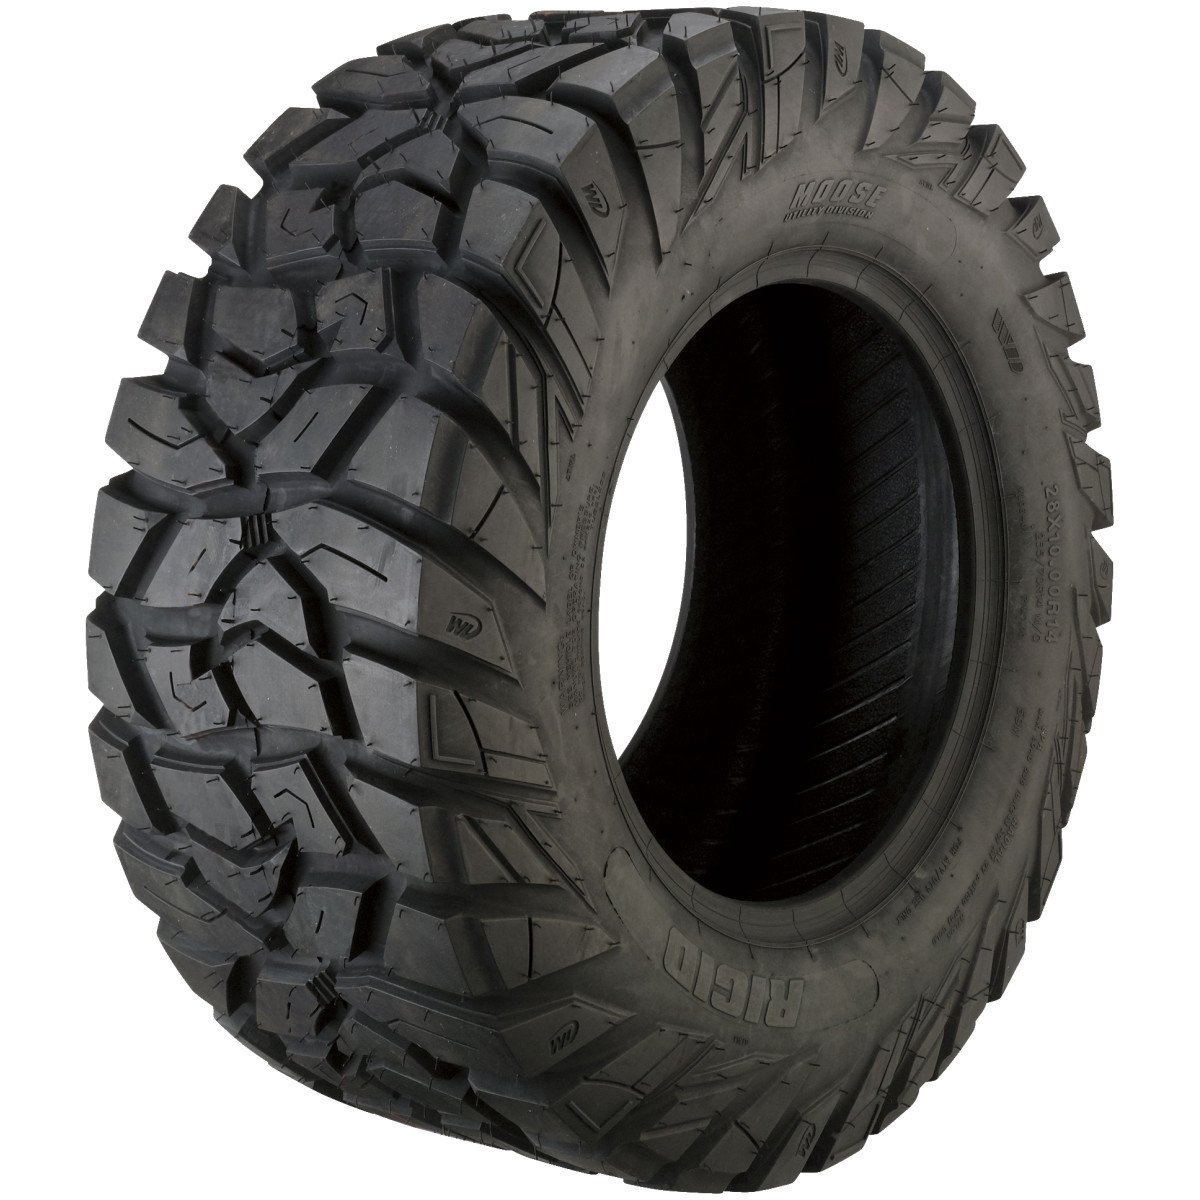 Moose 30x10.00R14 Rigid rengassarja